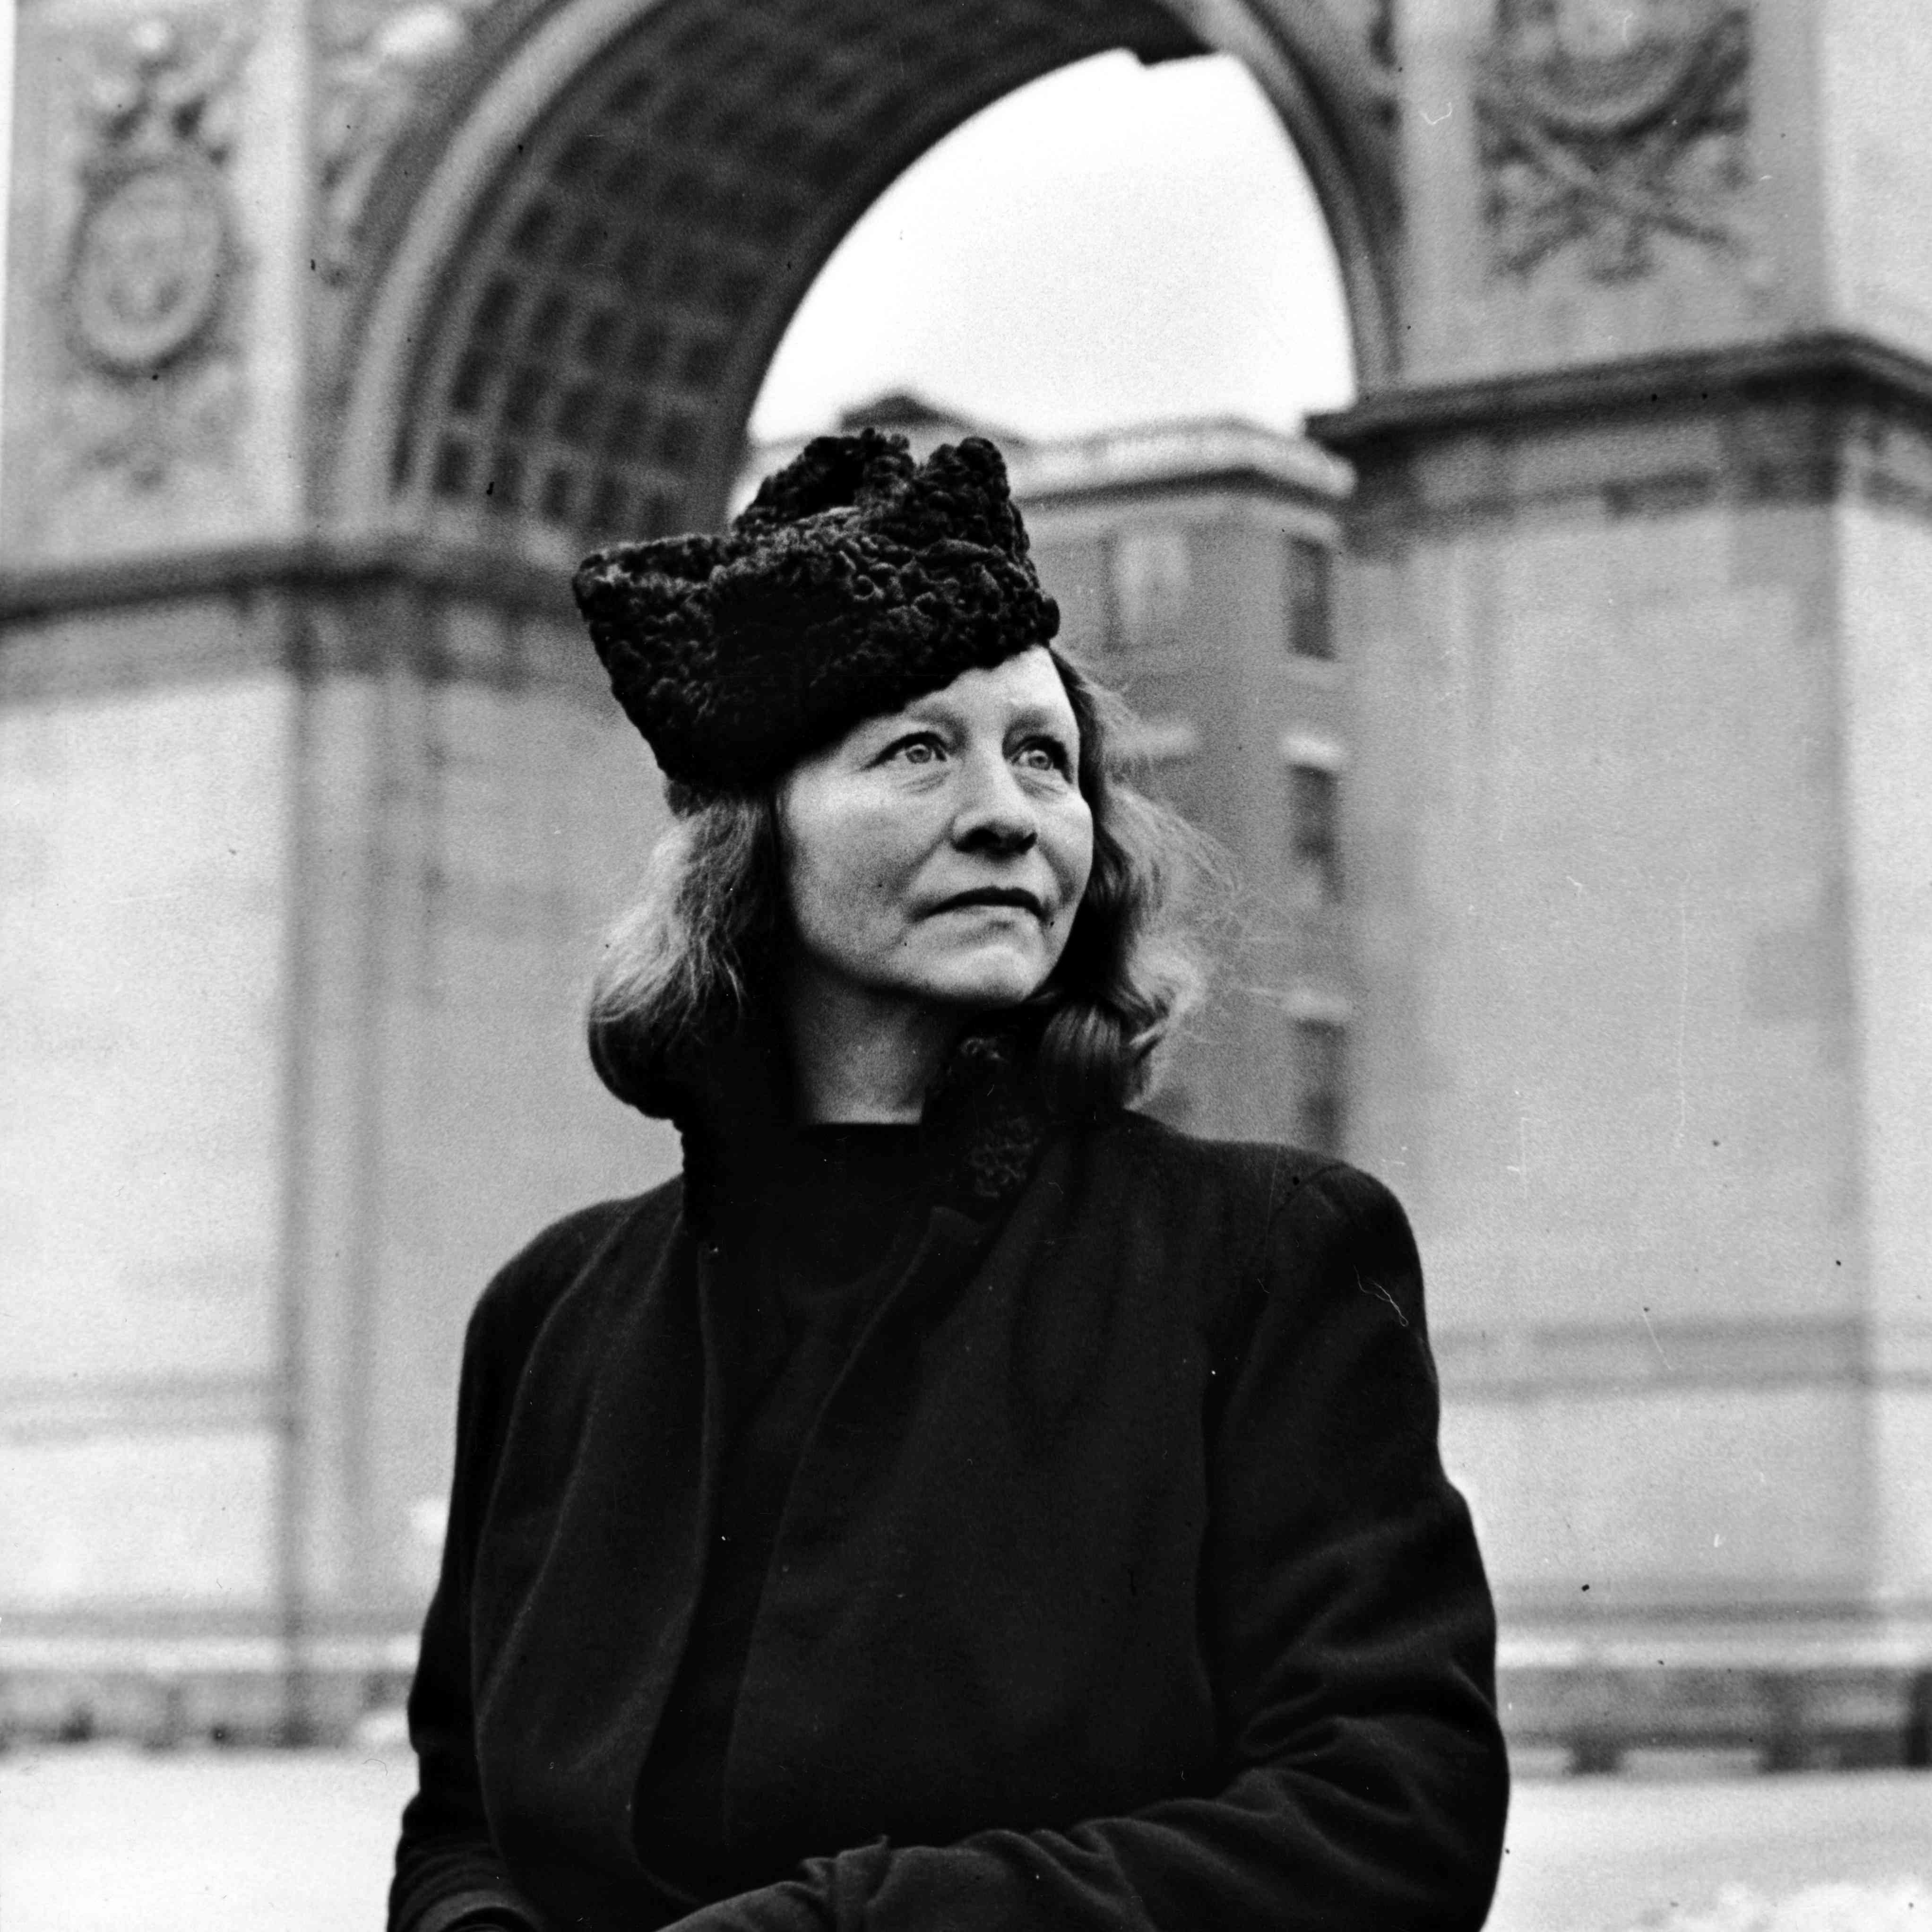 Edna St. Vincent Millay is standing in Washington Square Park in Greenwich Village, New York City, in 1941.